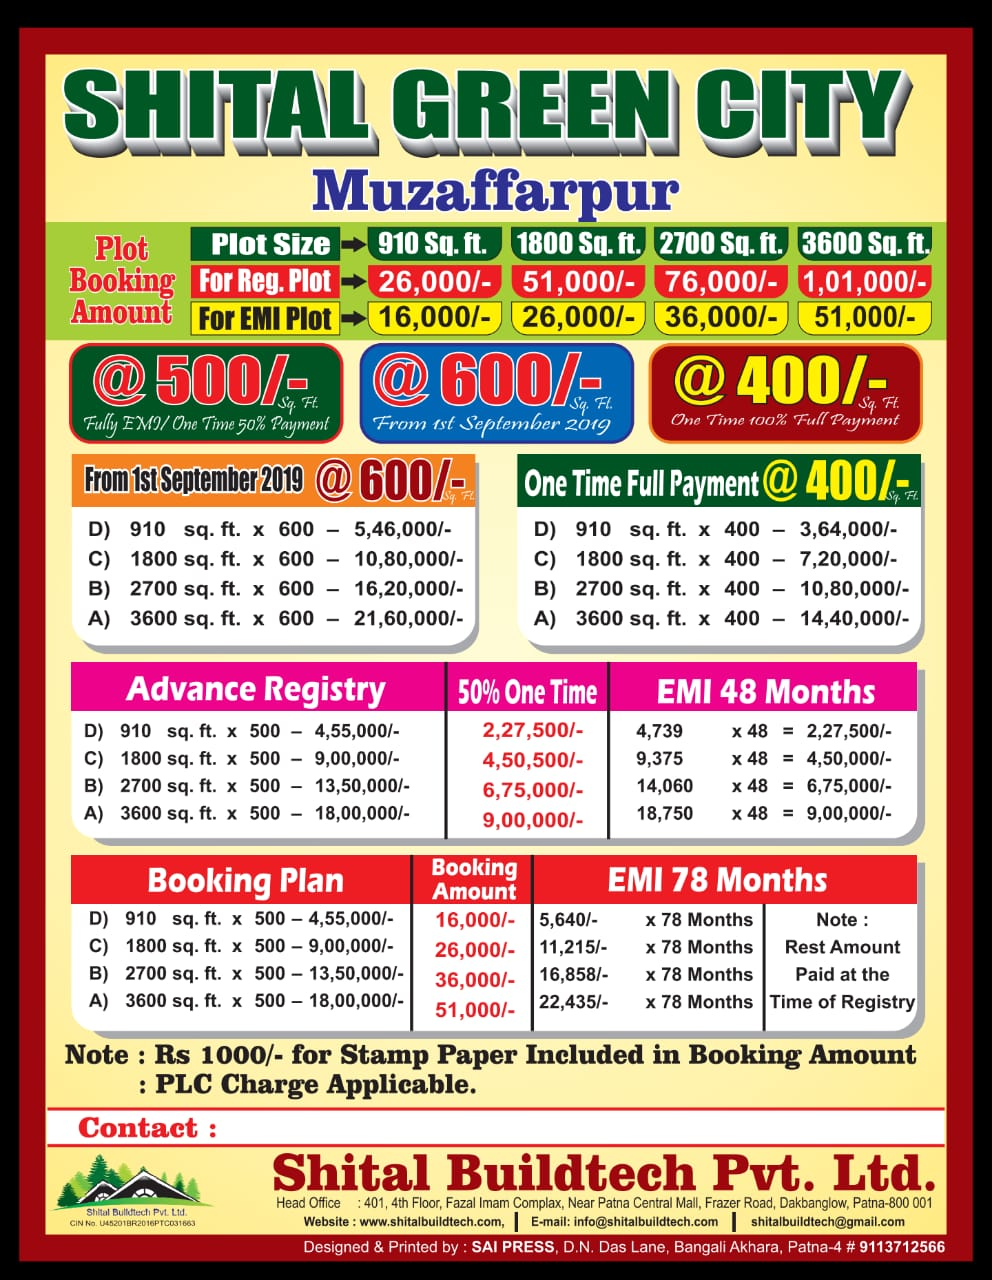 Residential Plot On Easy Emi With Registry (5000-- Per Month) 910 Sq.ft At Marwan, Muzaffarpur, Bihar